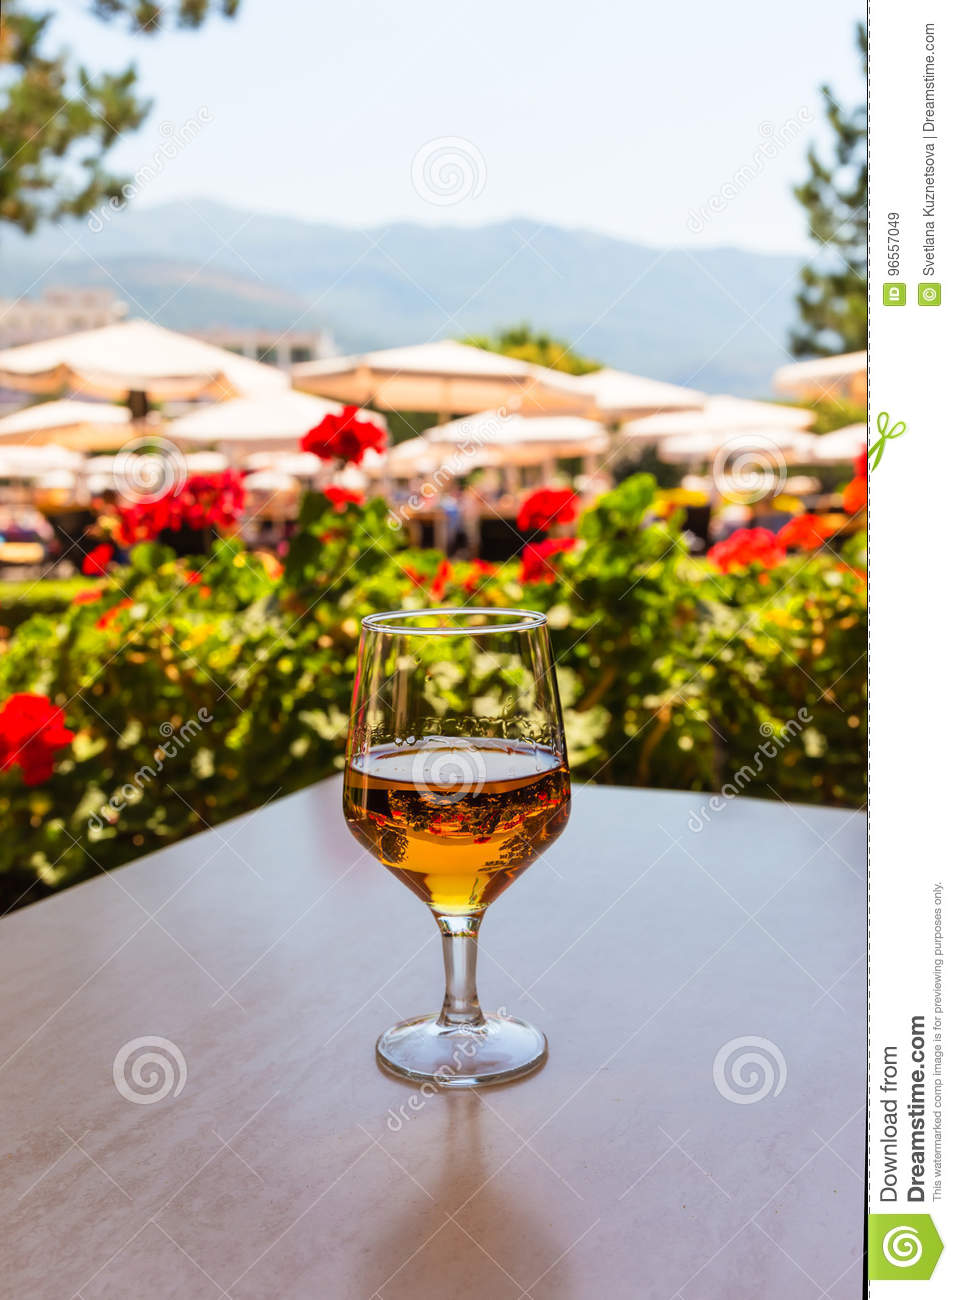 glass of wine on wooden table in the background of beach umbrellas